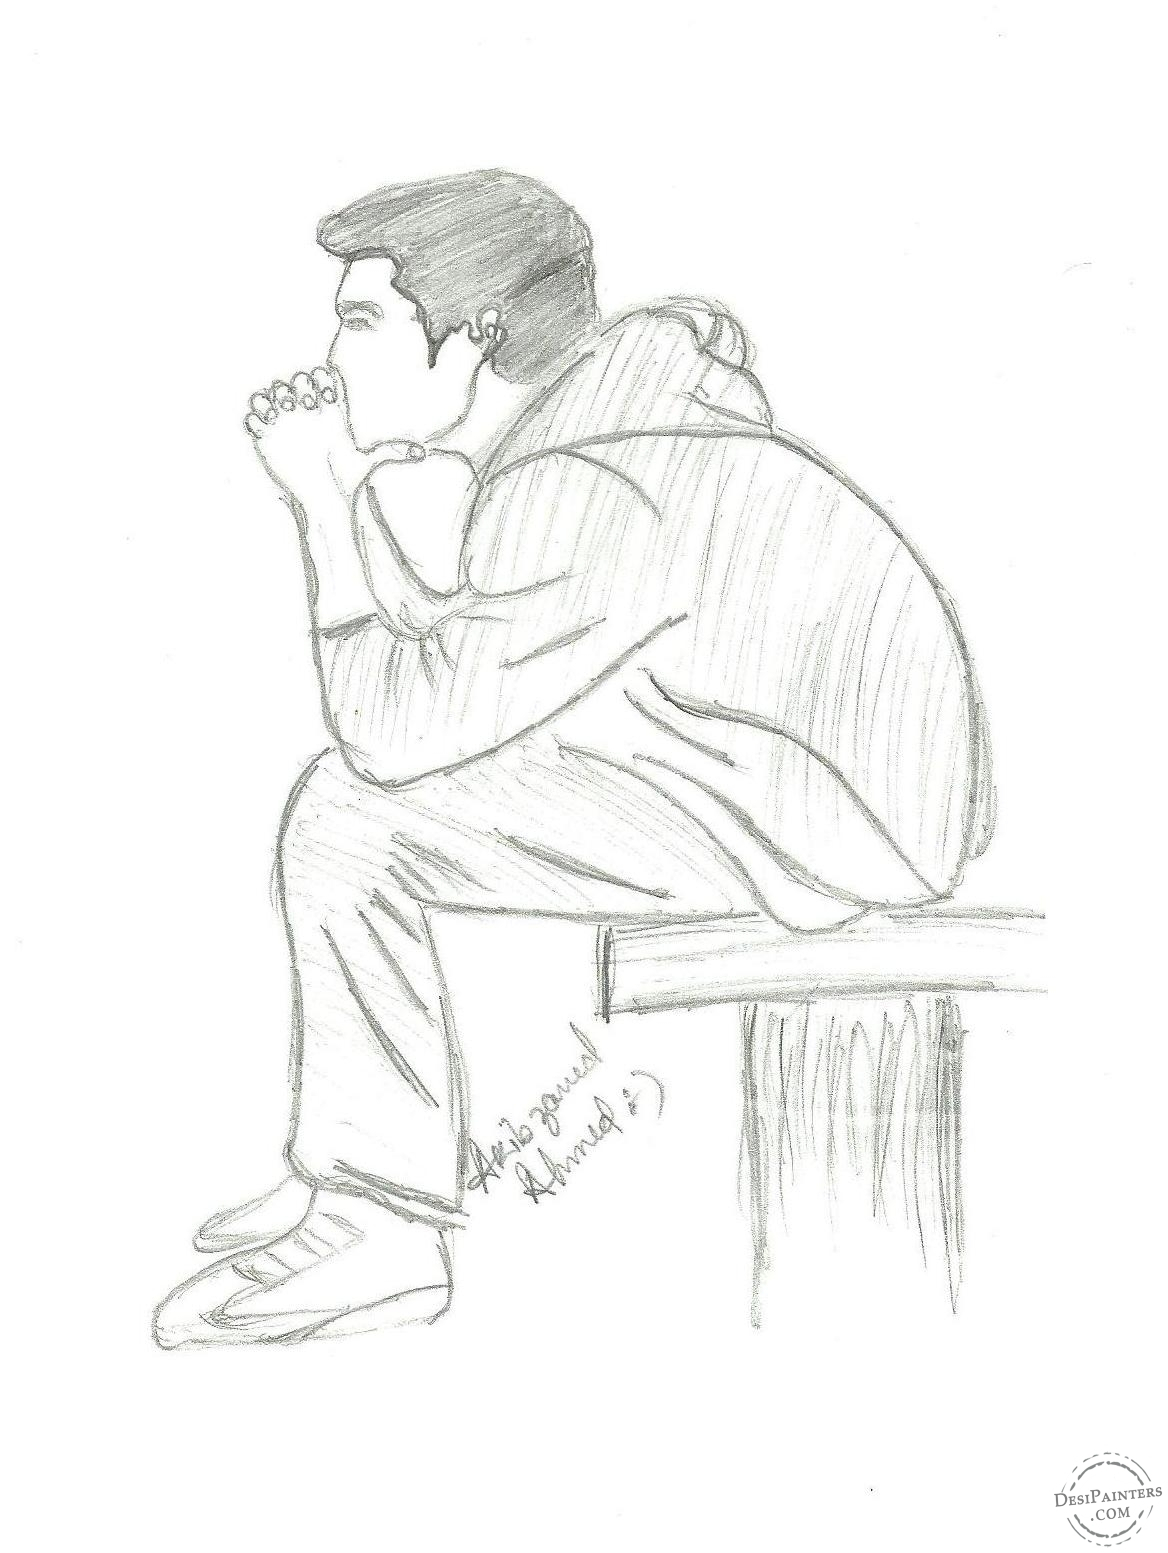 1168x1553 Boy Pencil Sketch 3d Drawing Sad 3d Sketches Of Pencil Boy Sad Boy